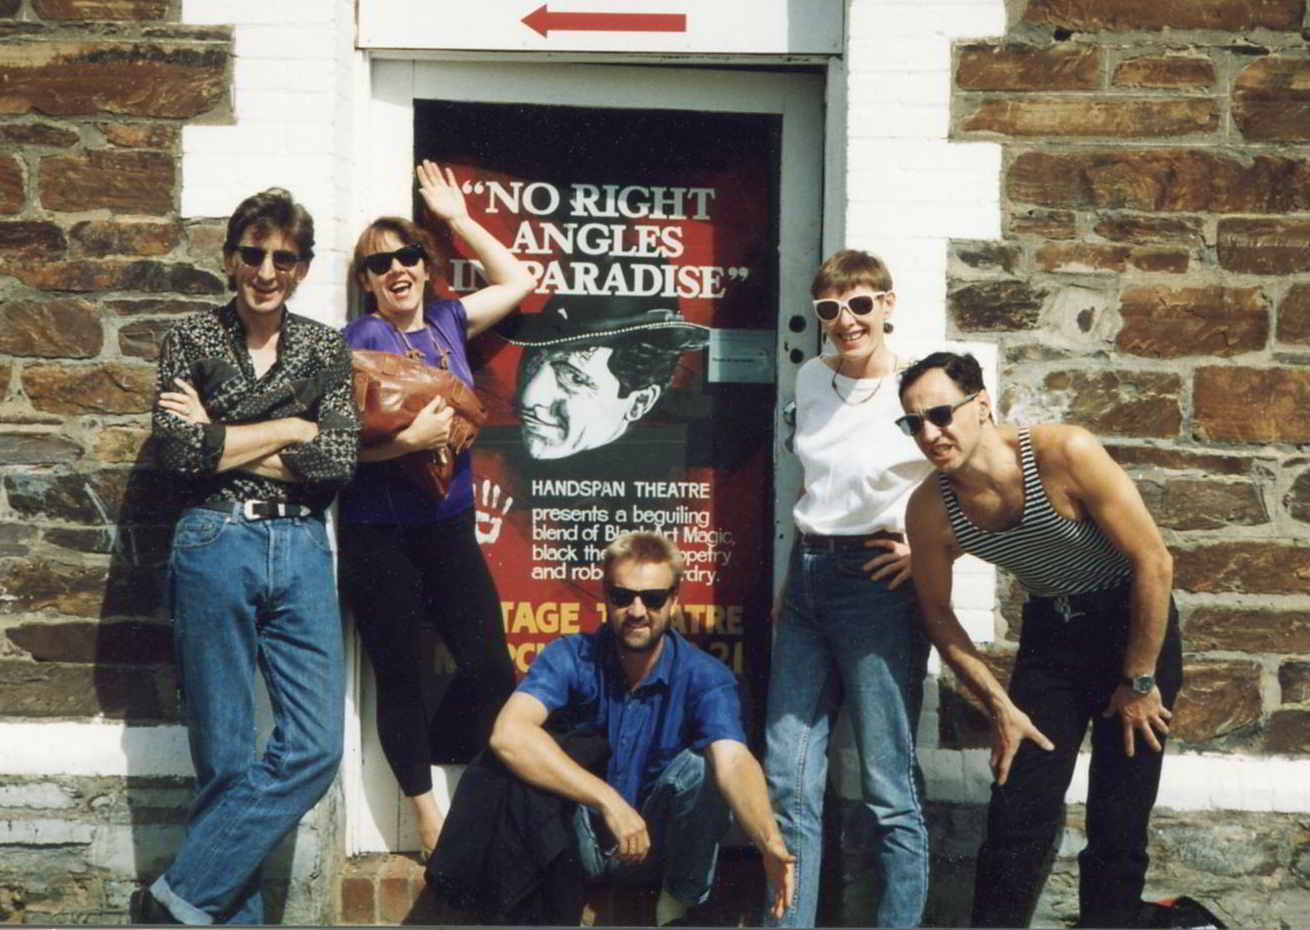 No Right Angles in Paradise company 5 people with sunglasses around show poster Cottage Theatre Adelaide